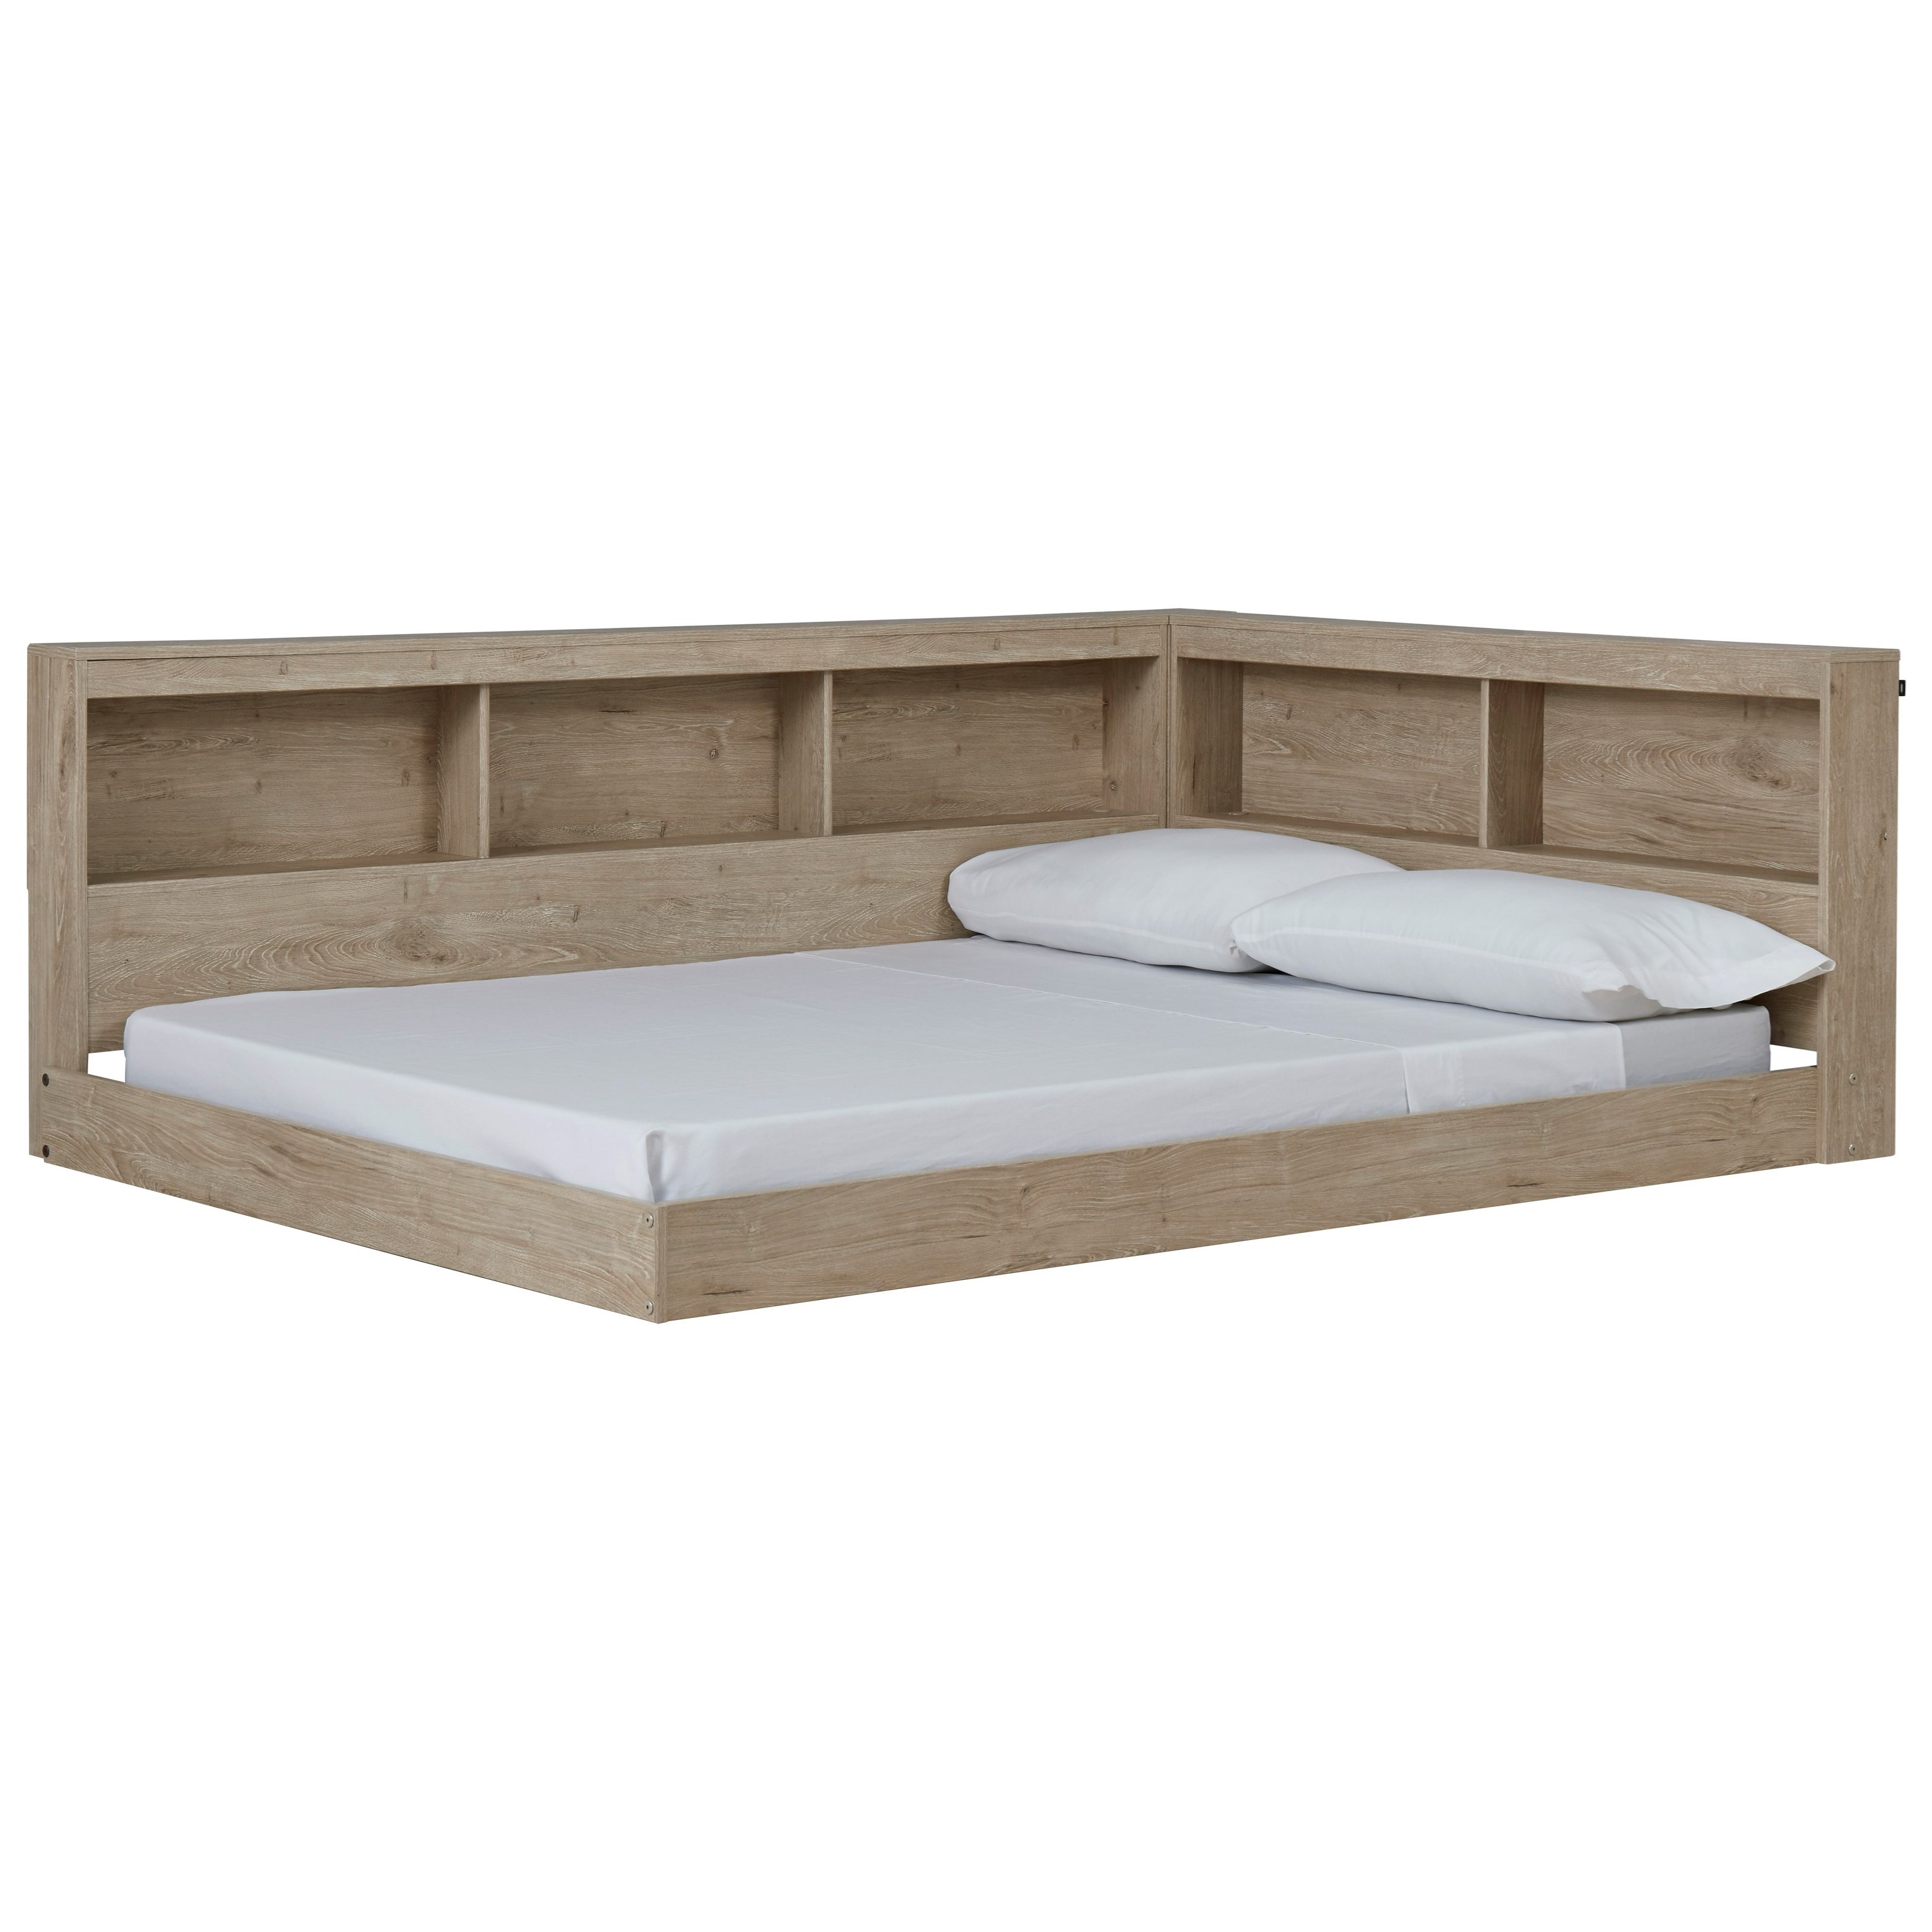 Oliah Full Bookcase Bed by Signature Design by Ashley at Smart Buy Furniture